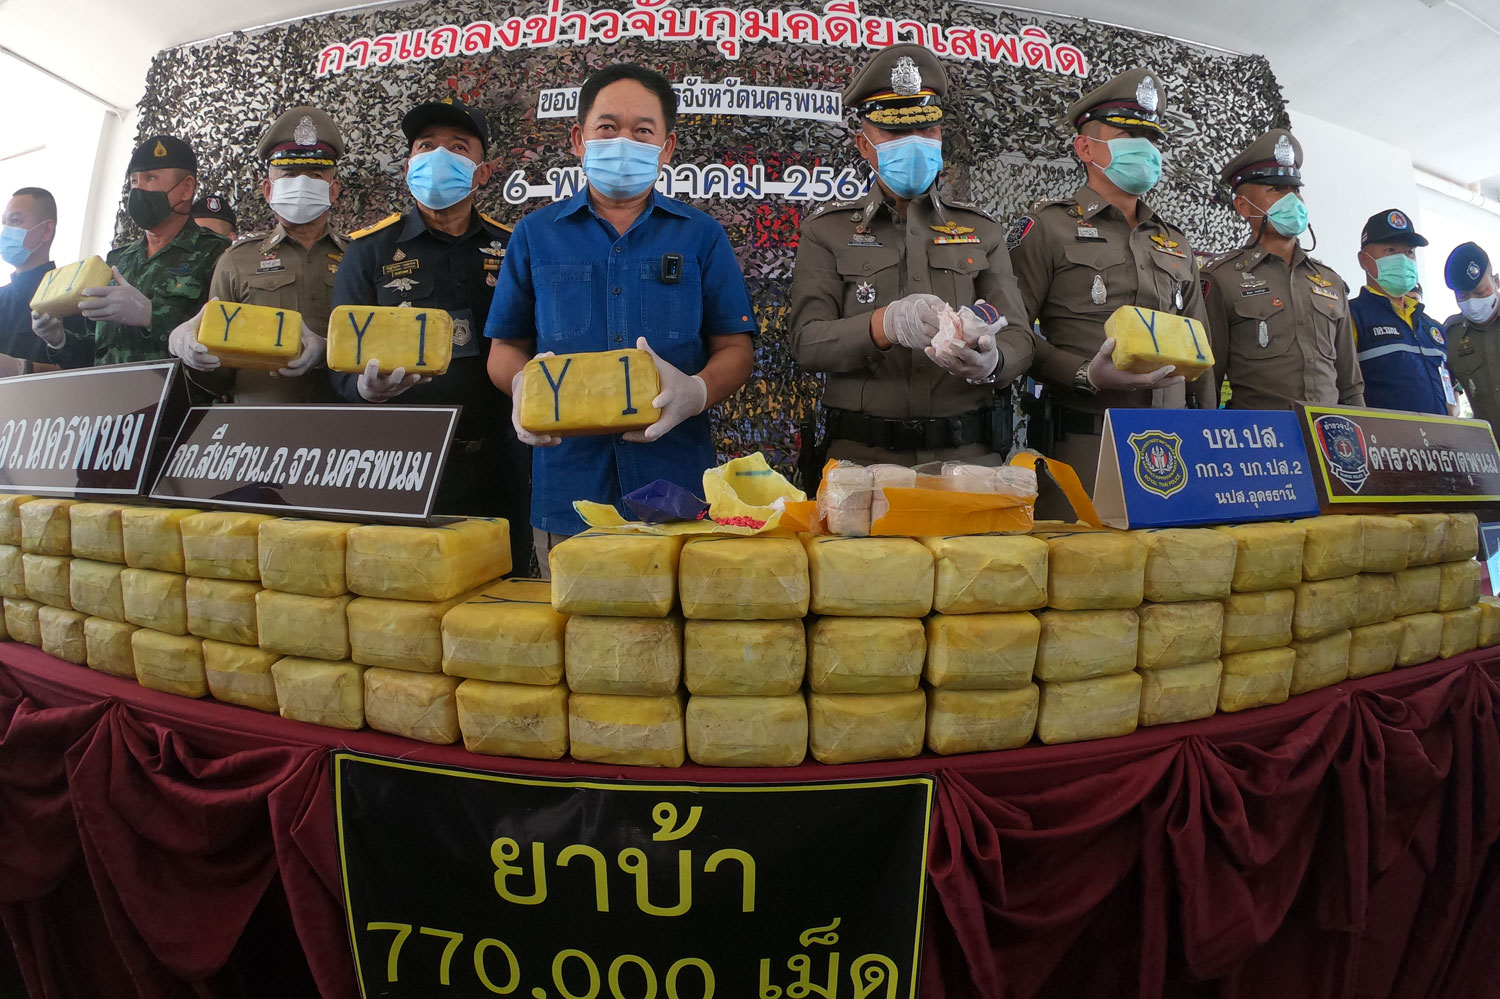 Nakhon Phanom governor Kraisorn Kongchalard, centre, and senior police and soldiers announce the arrest of the four people and seizure of 770,000 meth pills in Tha Uthen district of Nakhon Phanom, at a media briefing on Thursday. (Photo: Pattanapong Sripiachai)